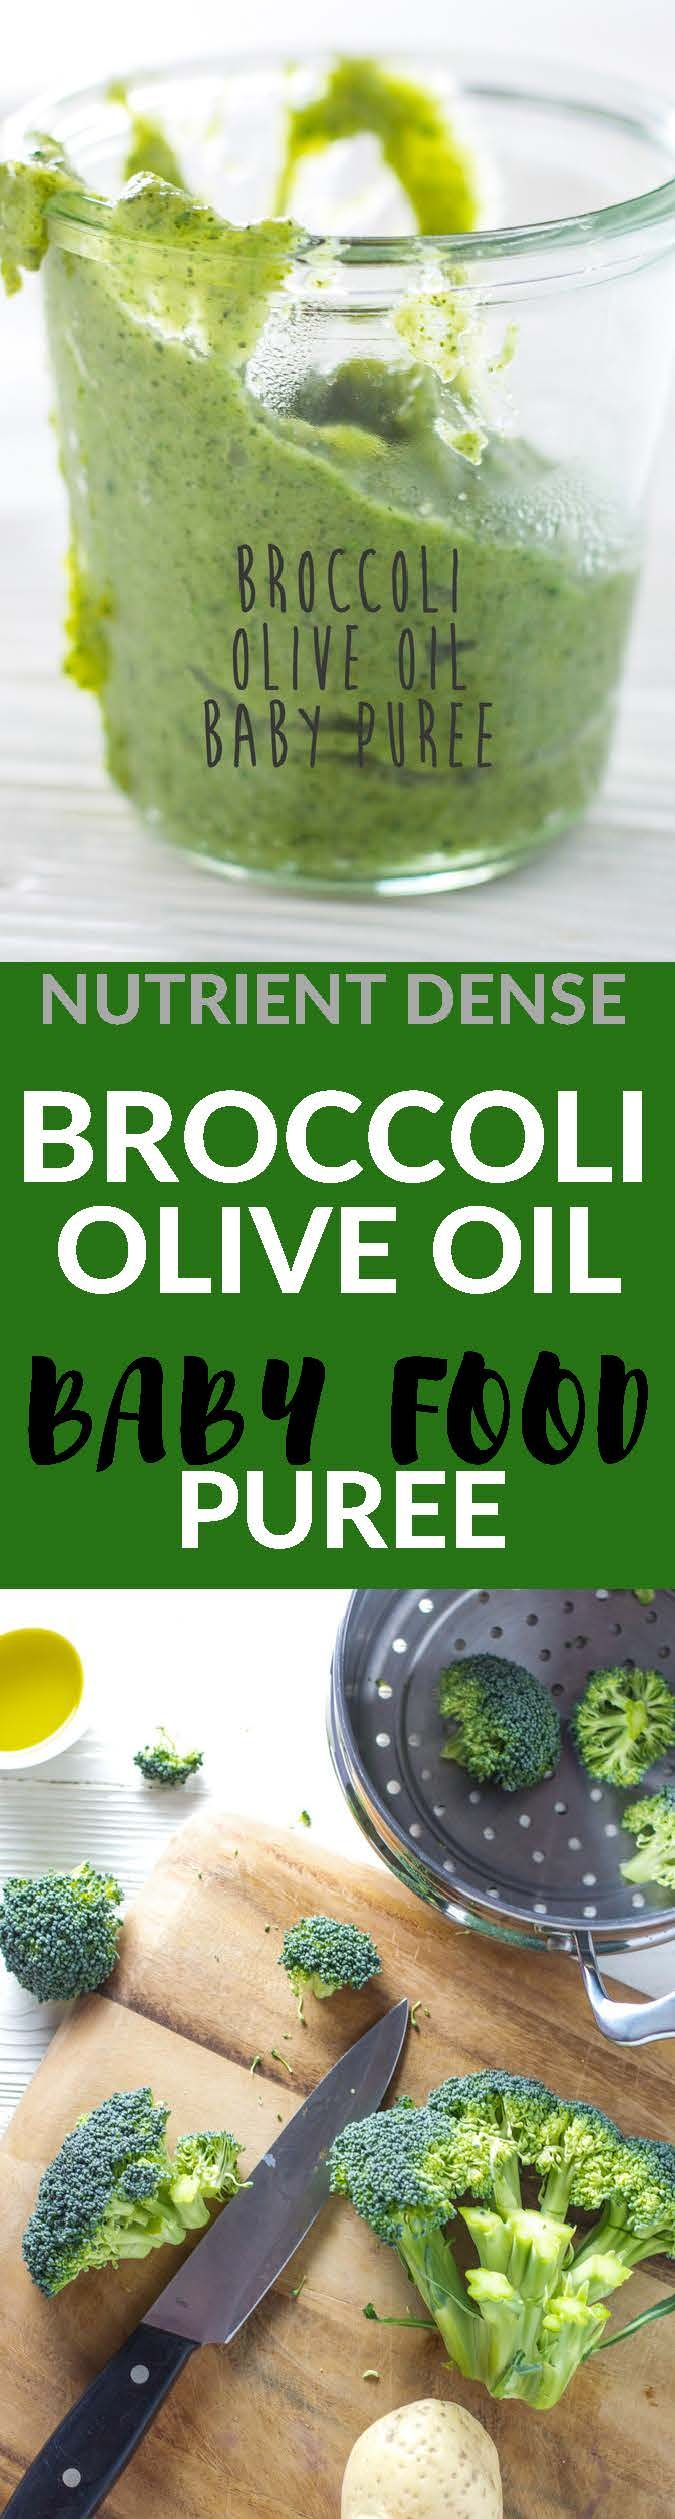 Broccoli Olive Oil Puree Recipe With Images Baby Food Recipes Pureed Food Recipes Baby Food Diet